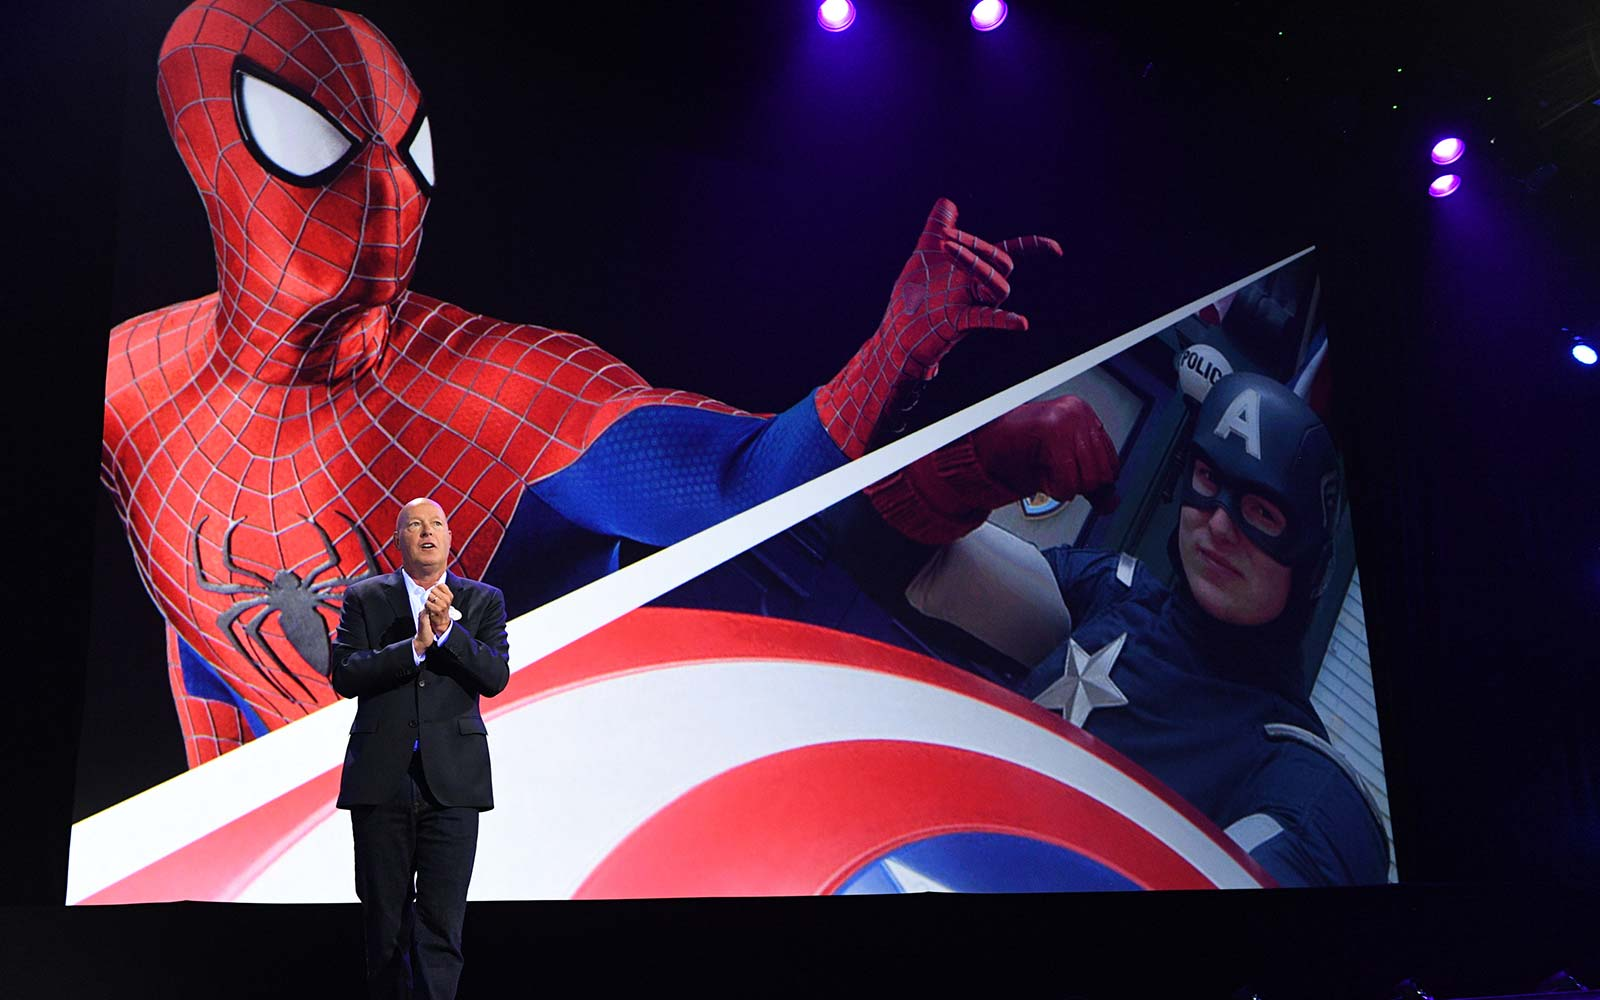 Walt Disney Parks and Resorts announced an extraordinary line-up of brand new attractions and experiences coming to its parks and resorts around the world at D23 Expo 2017 in Anaheim, California